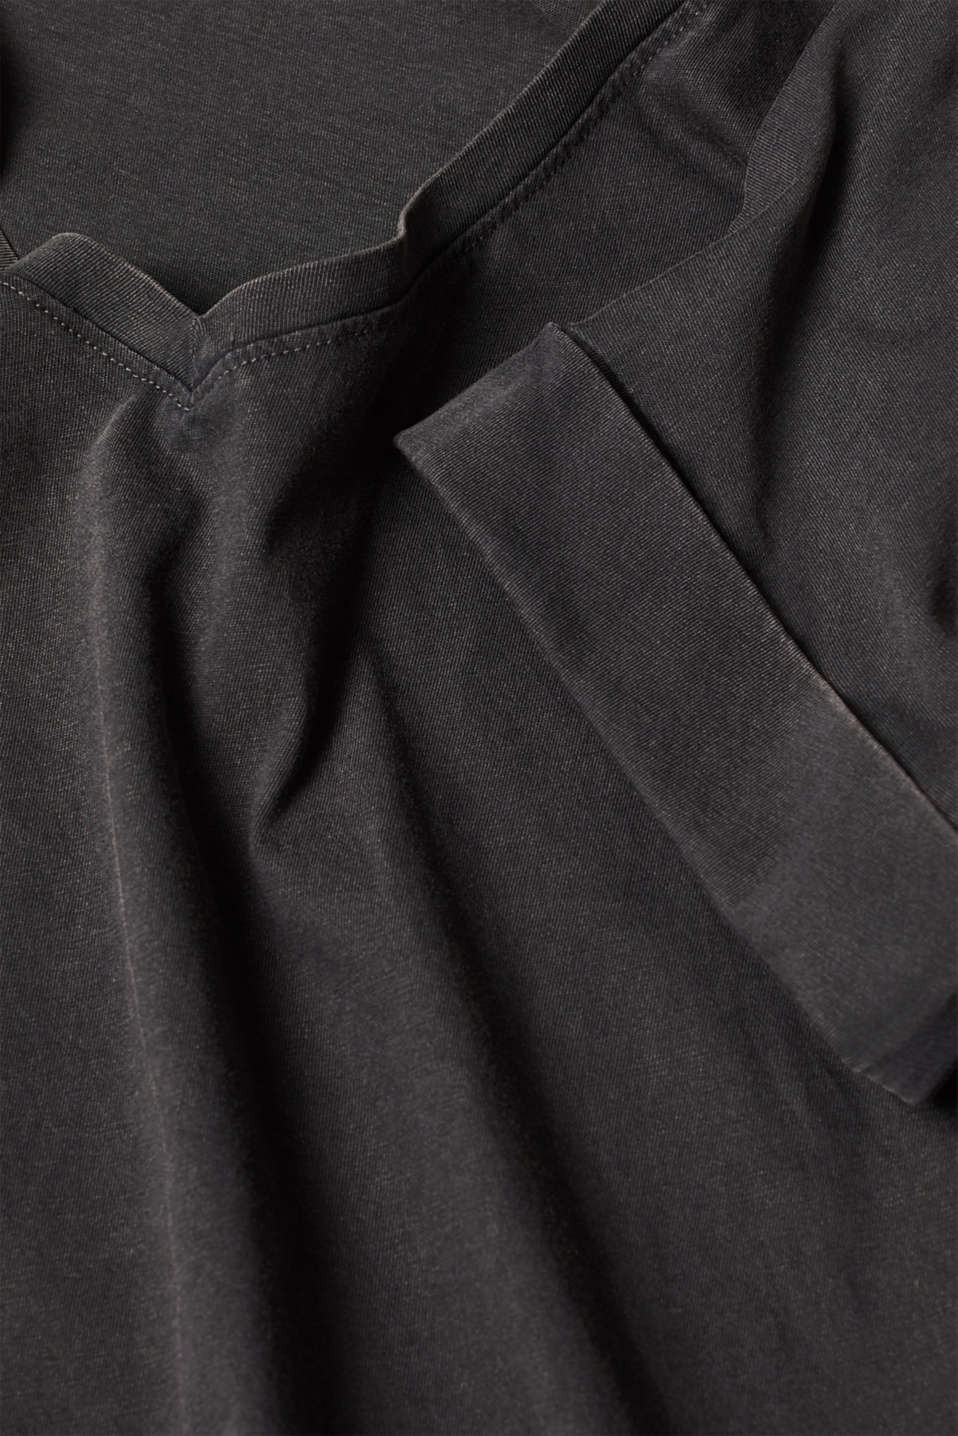 T-shirt with a casual cut, 100% cotton, BLACK, detail image number 4